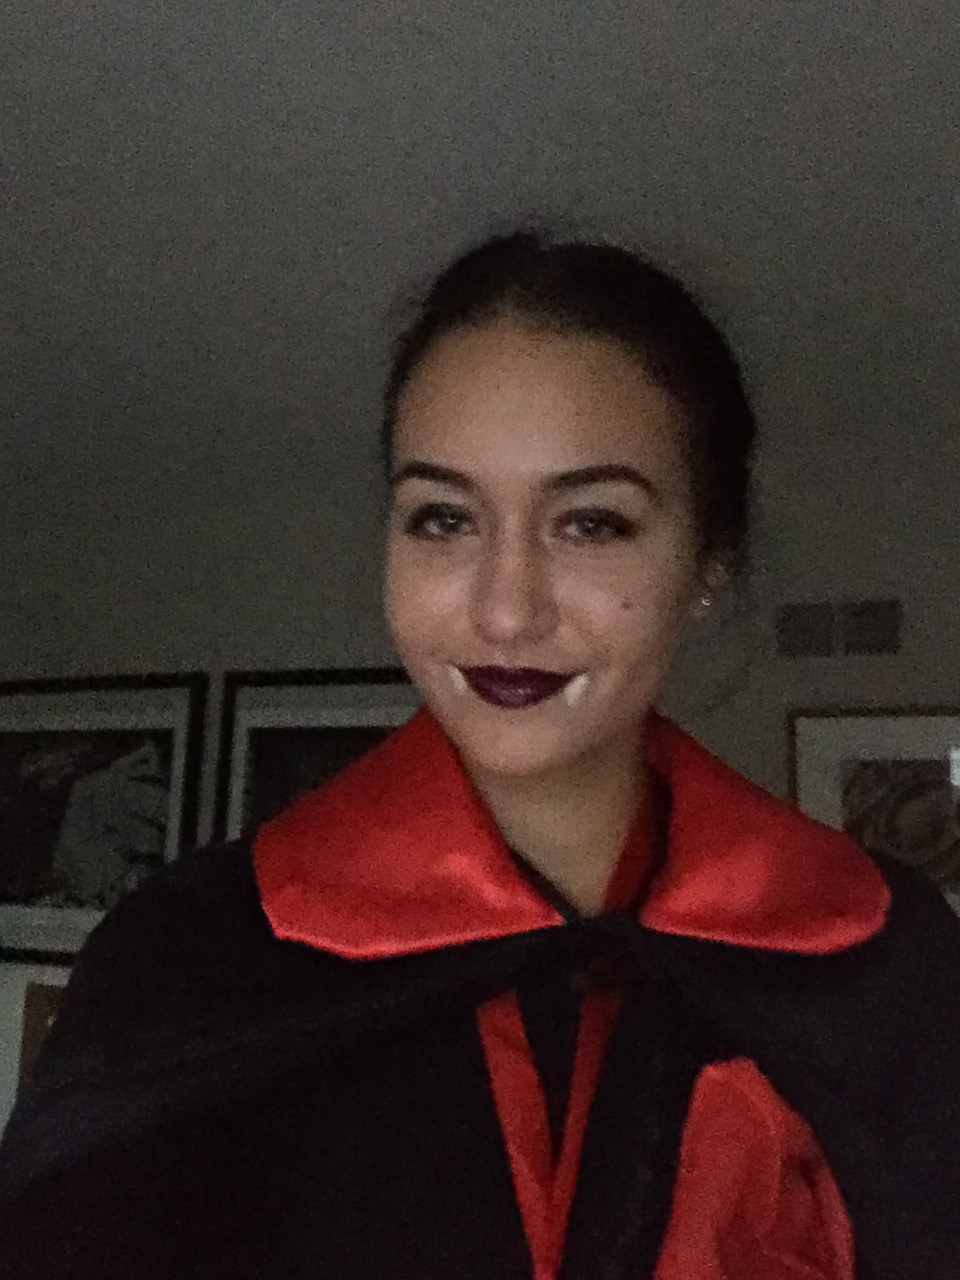 Ana dressed as a vampire for Halloween